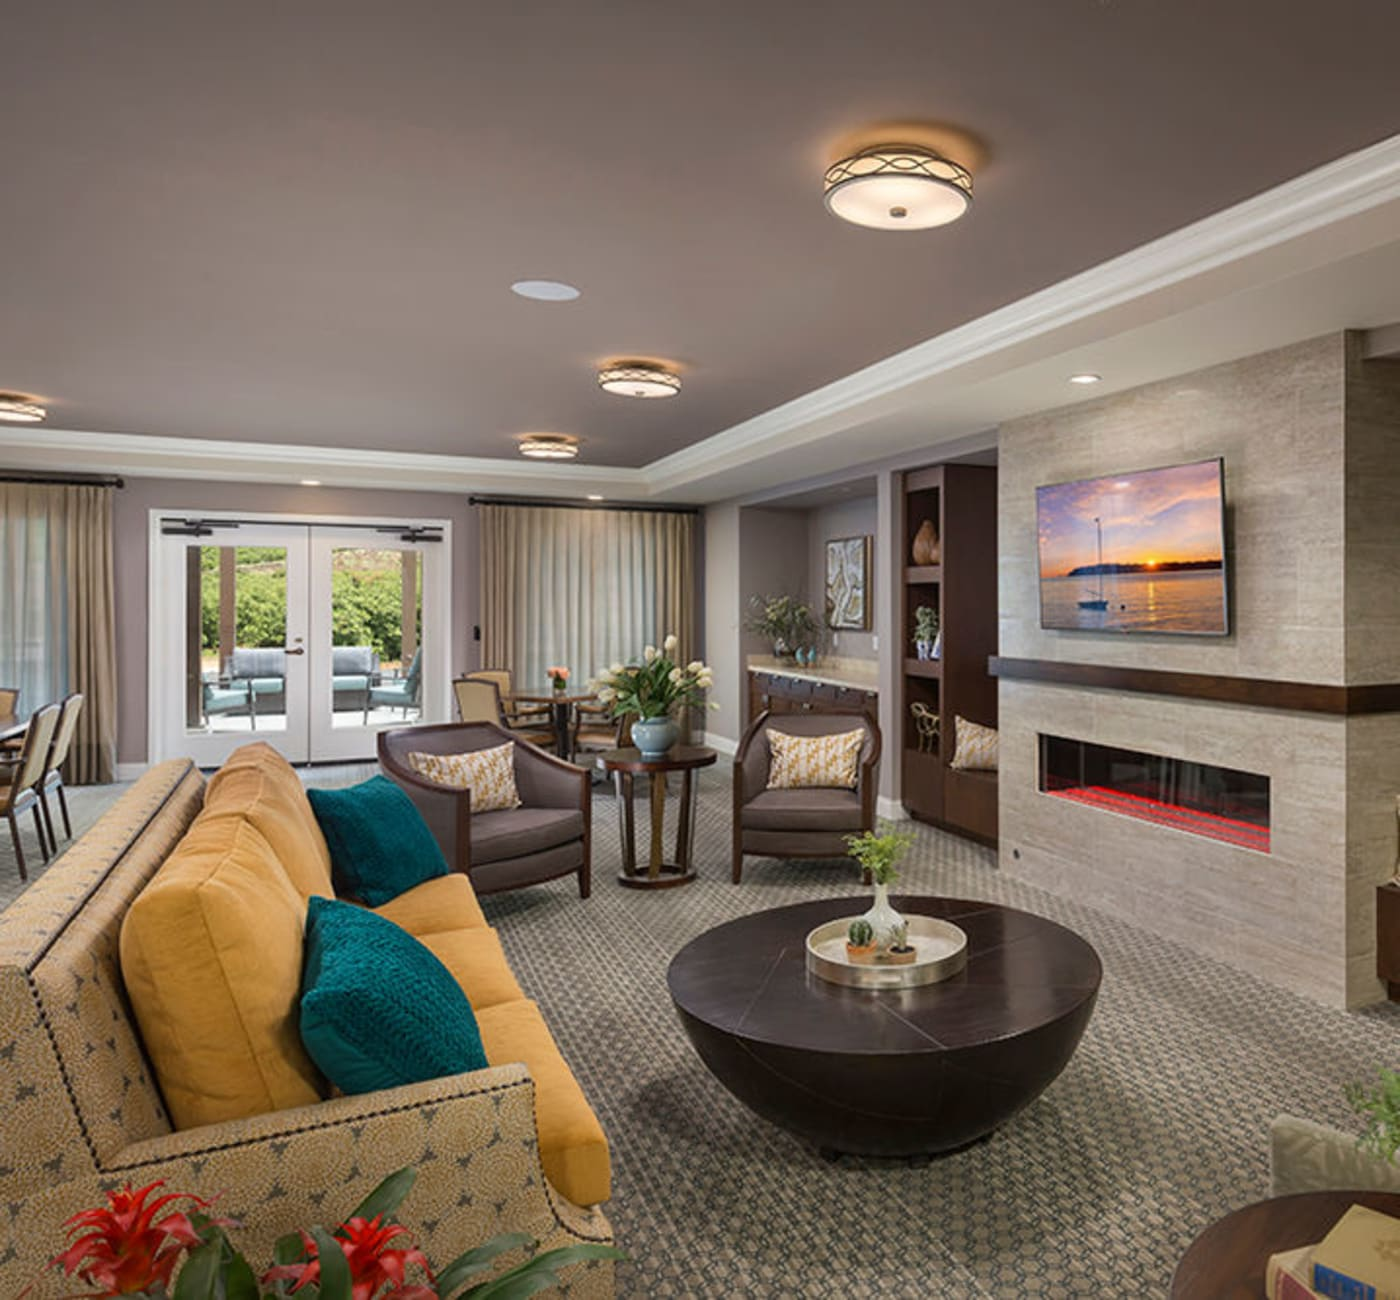 Cozy lounge seating for memory care residents at Touchmark in the West Hills in Portland, Oregon